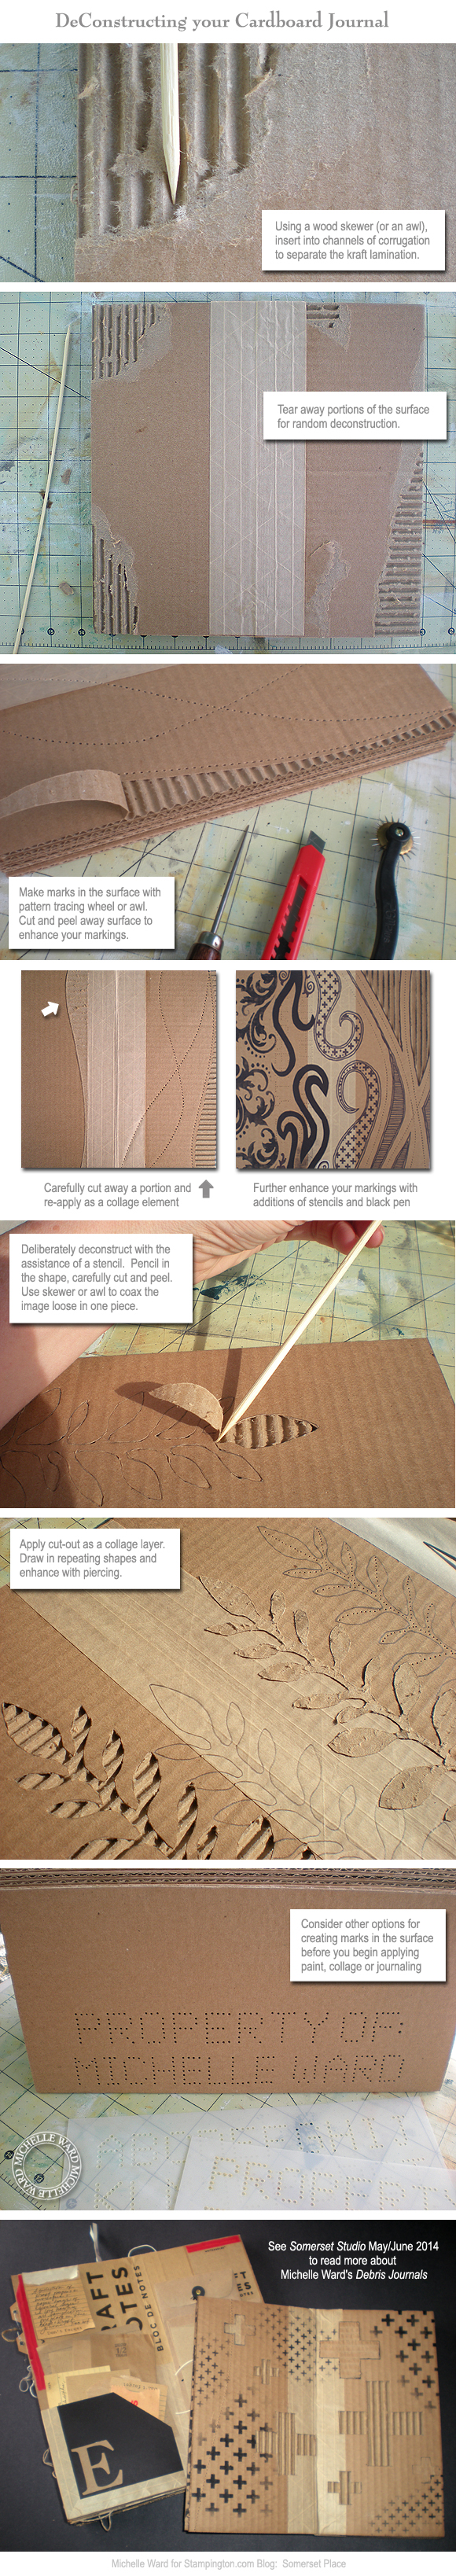 MKW Cardboard Journal Tutorial 2